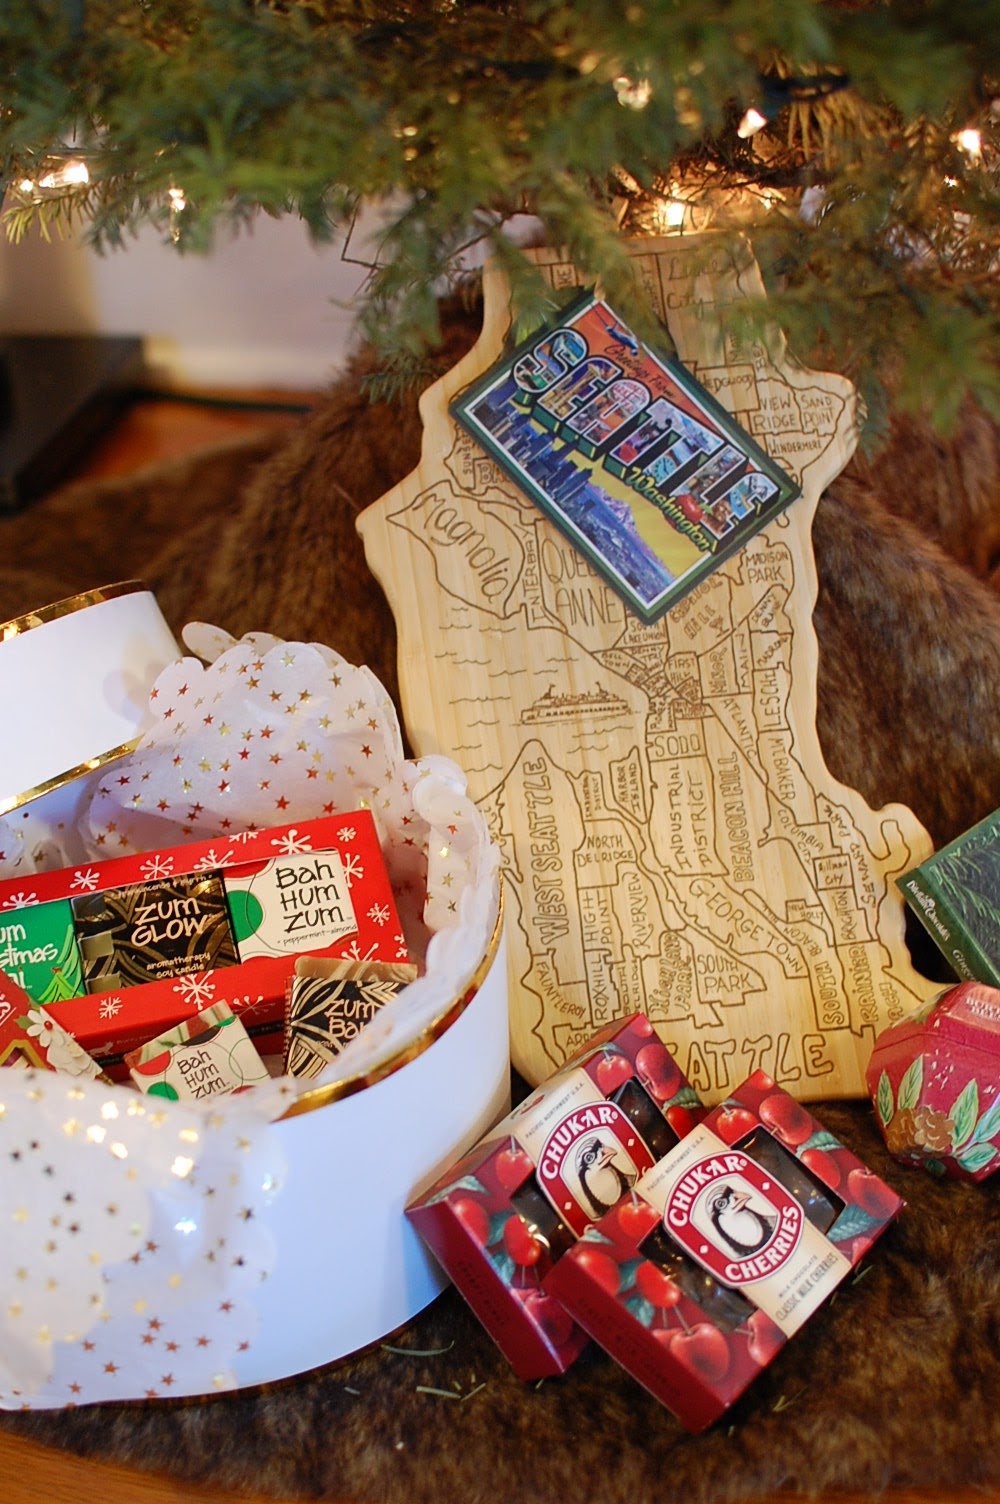 Last Minute Holiday Gift Ideas from Bartell Drugs